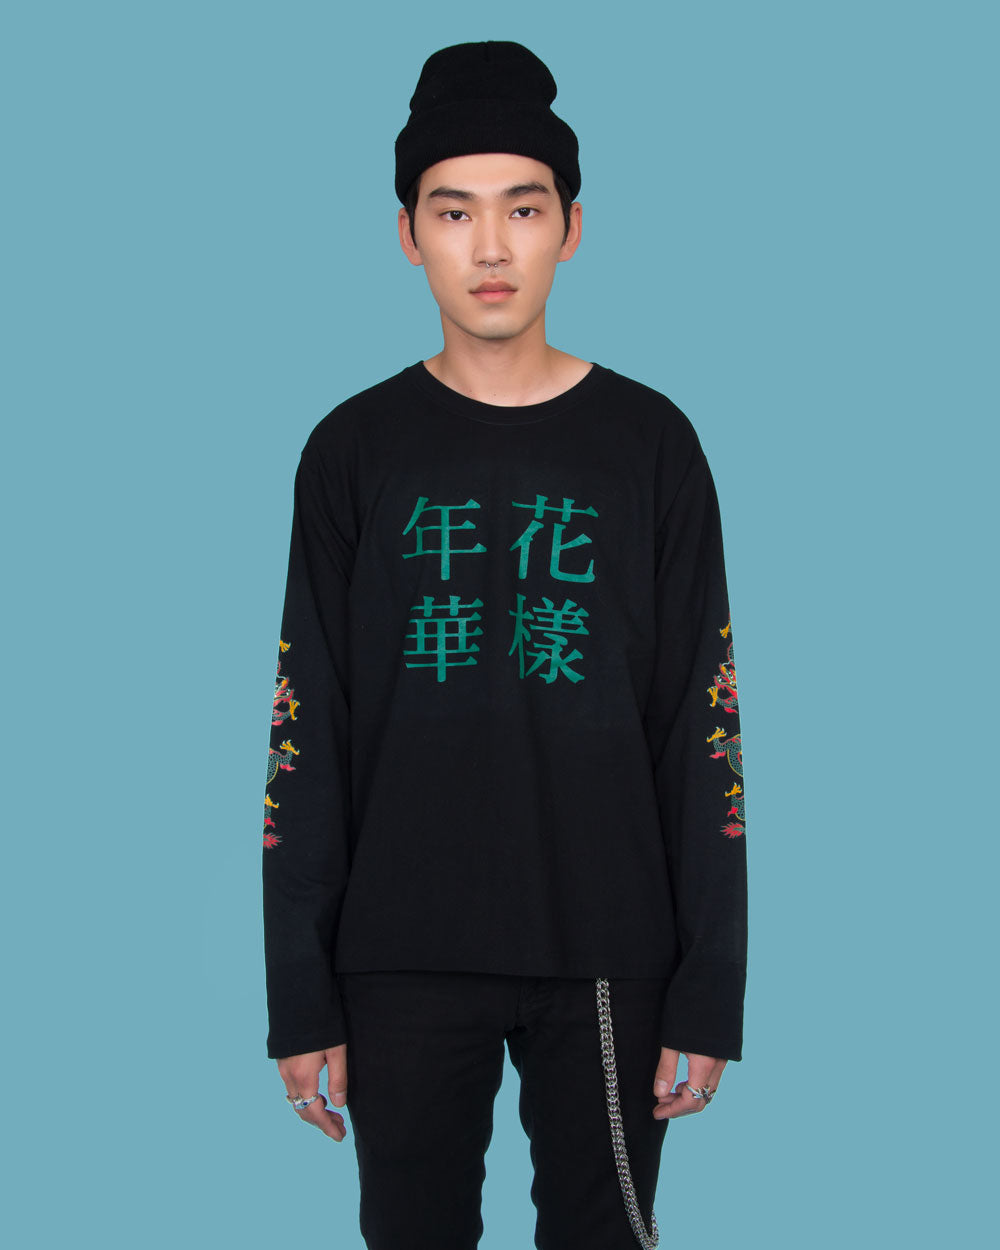 IN THE MOOD FOR LOVE LONG SLEEVE BLACK T-SHIRT